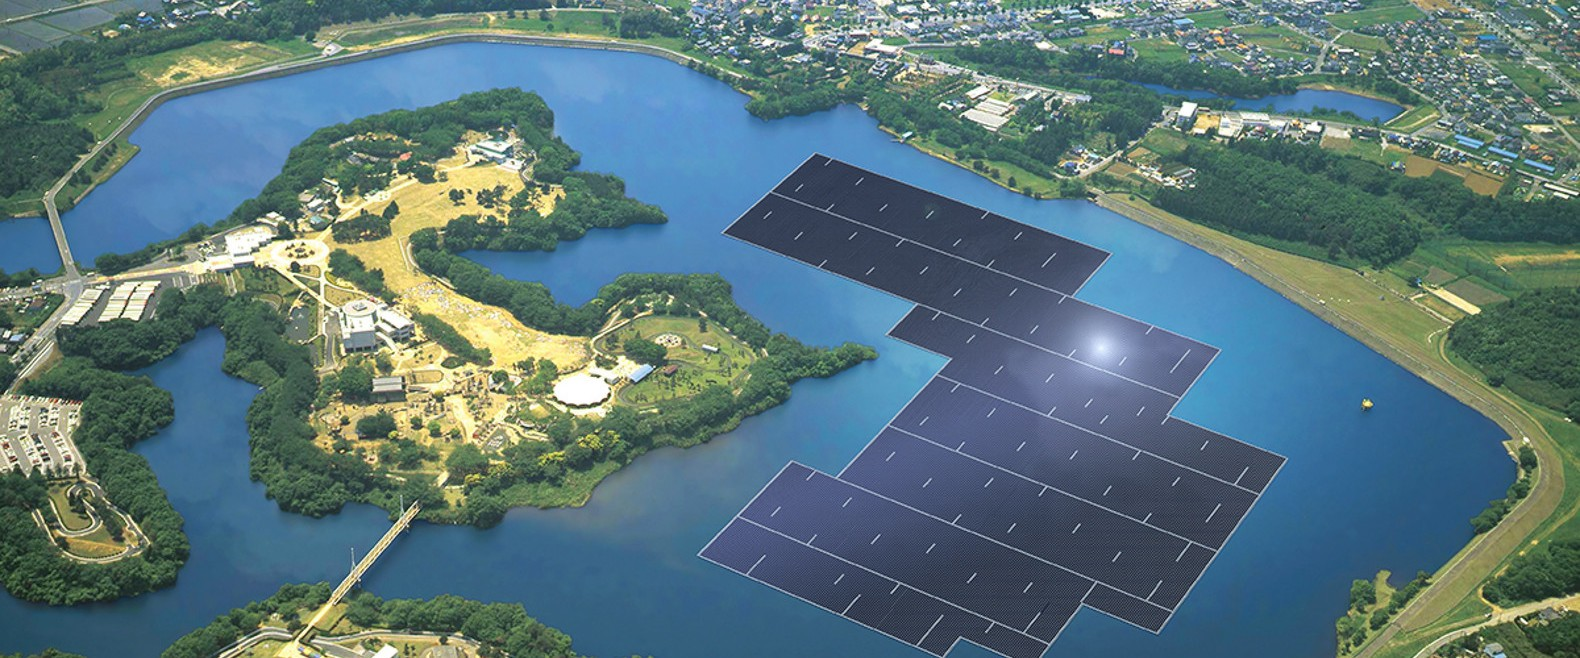 rendering-of-Kyocera-Yamakura-solar-power-plant-1580x658